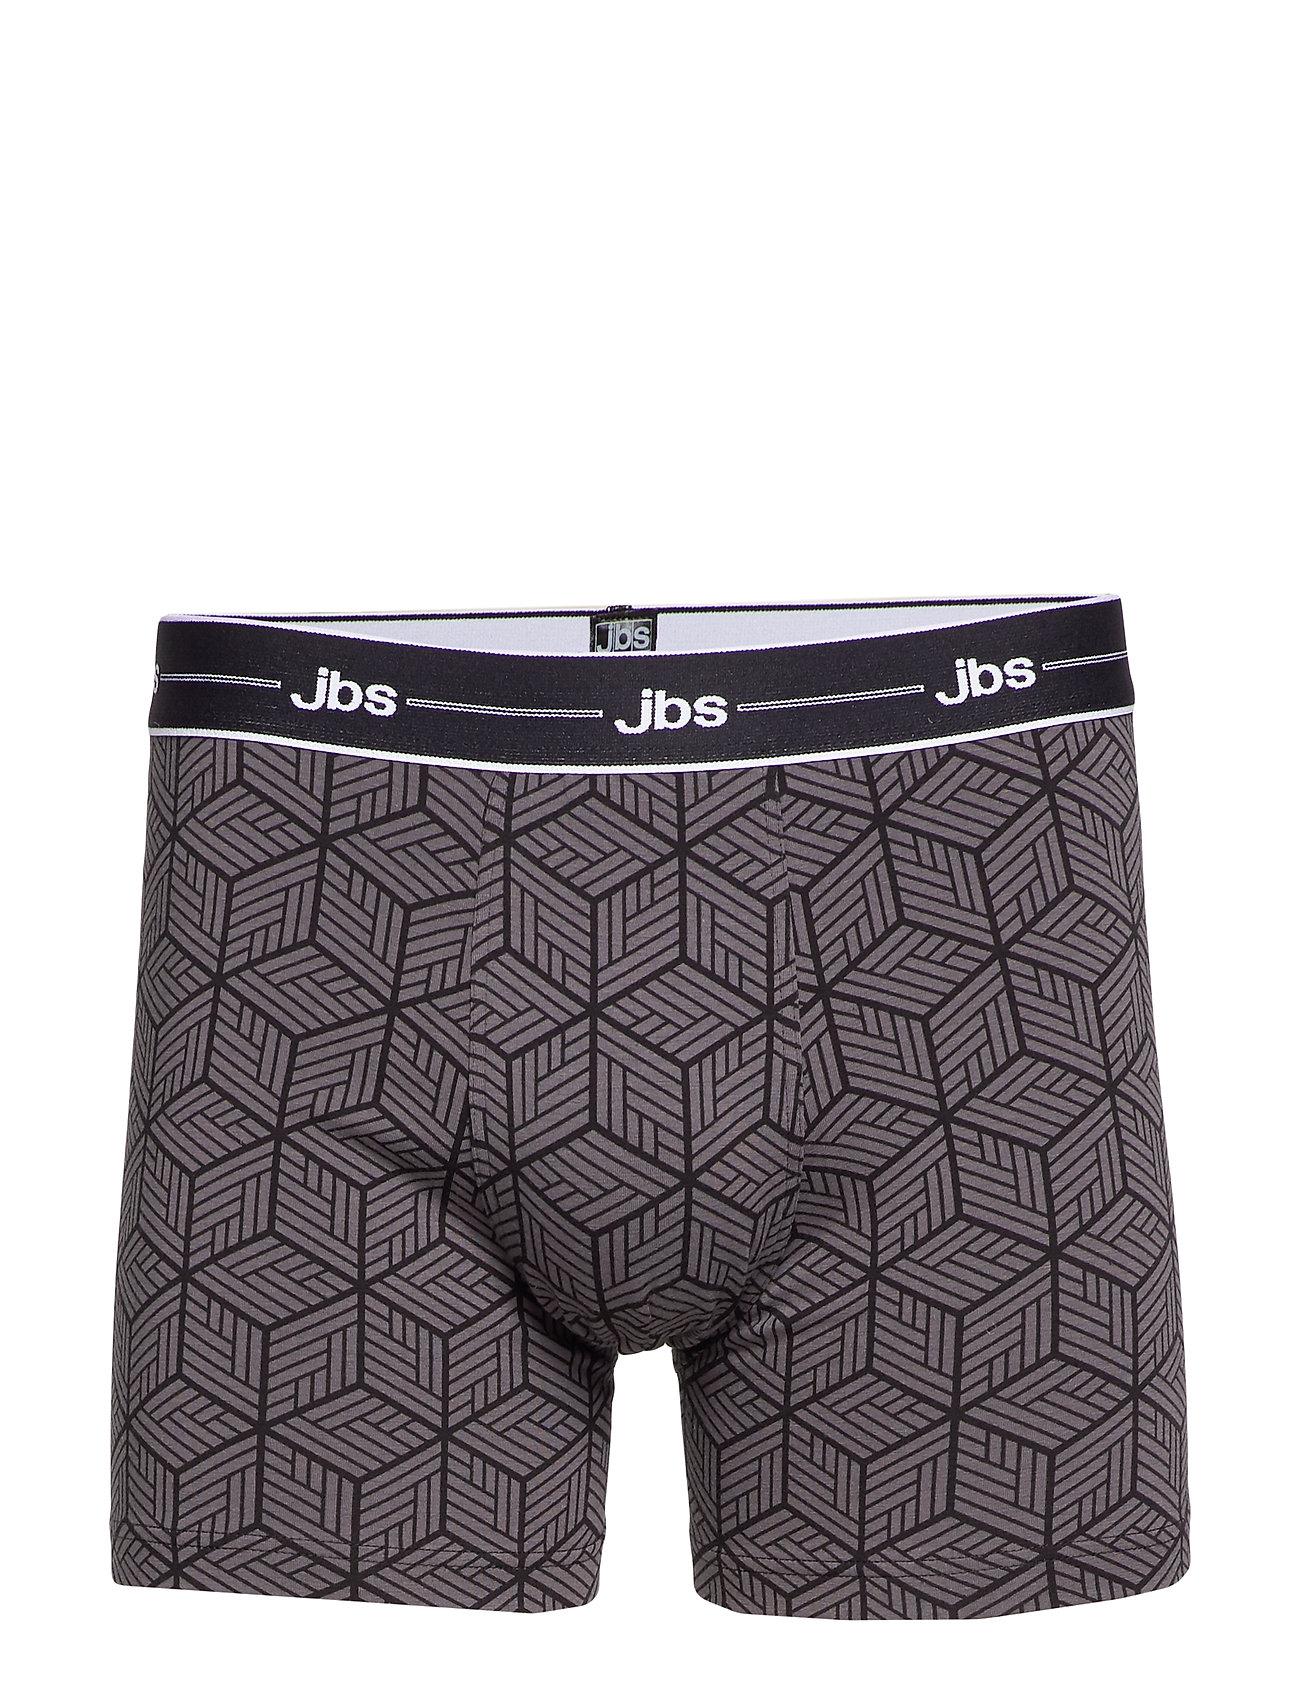 JBS JBS tights - GREY/BLACK